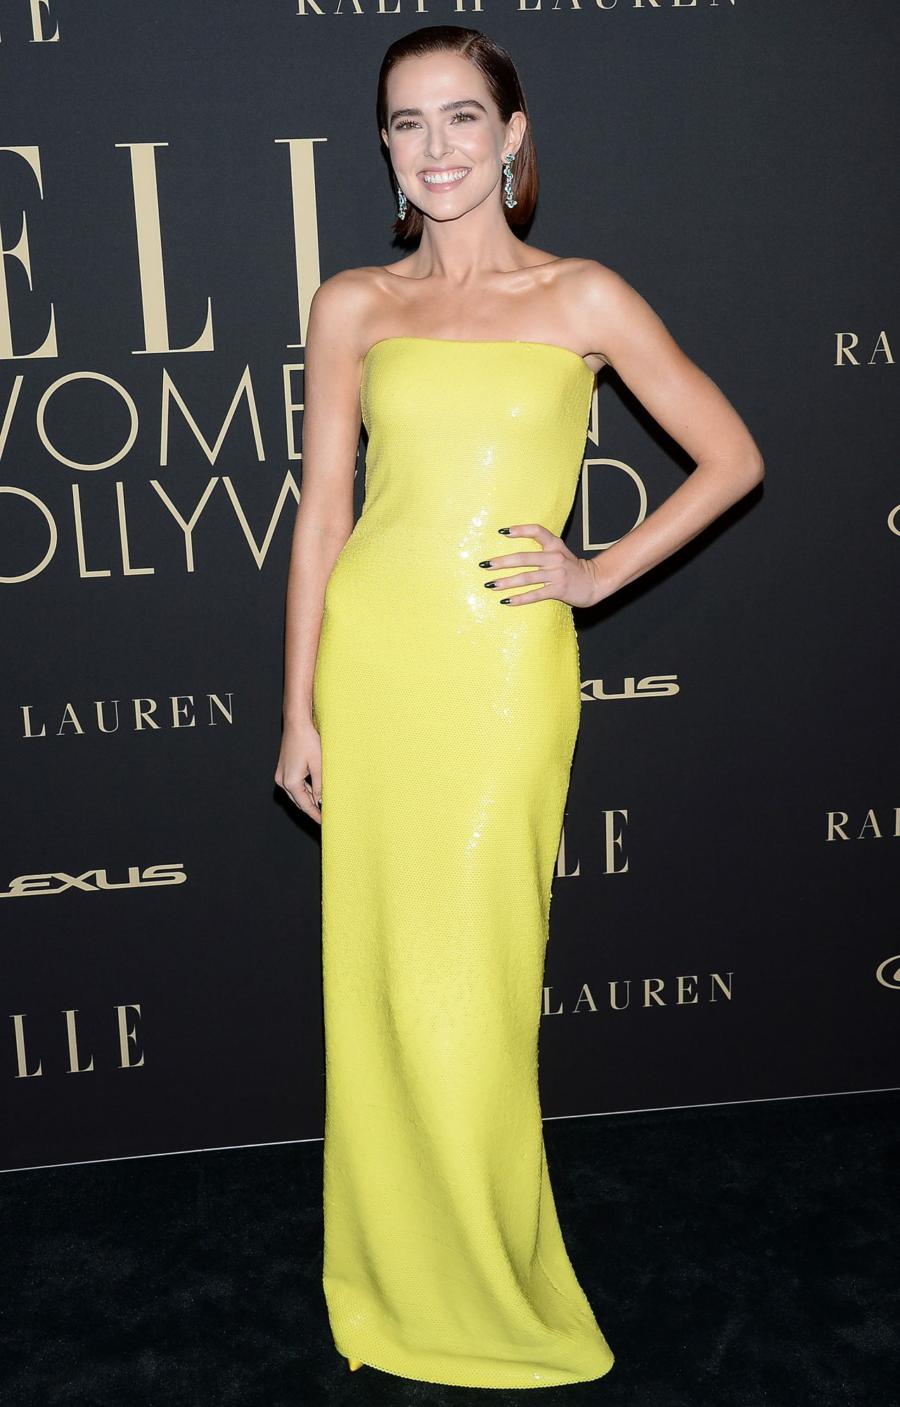 Zoey Deutch at ELLE's 2019 Women In Hollywood Event